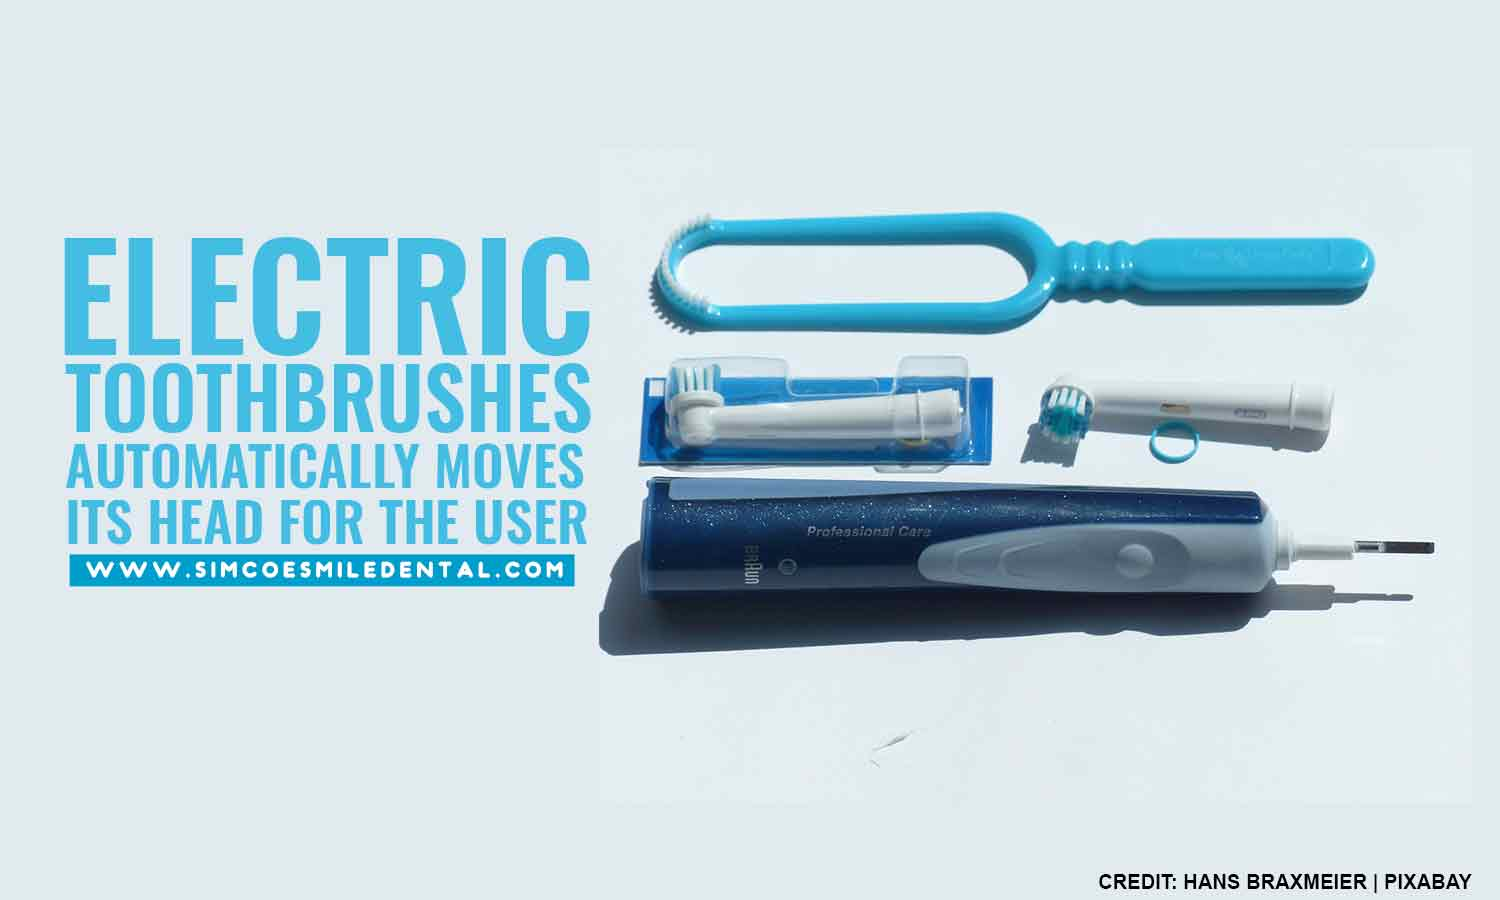 Electric-toothbrushes-automatically-moves-its-head-for-the-user How to Pick the Right Toothbrush for You